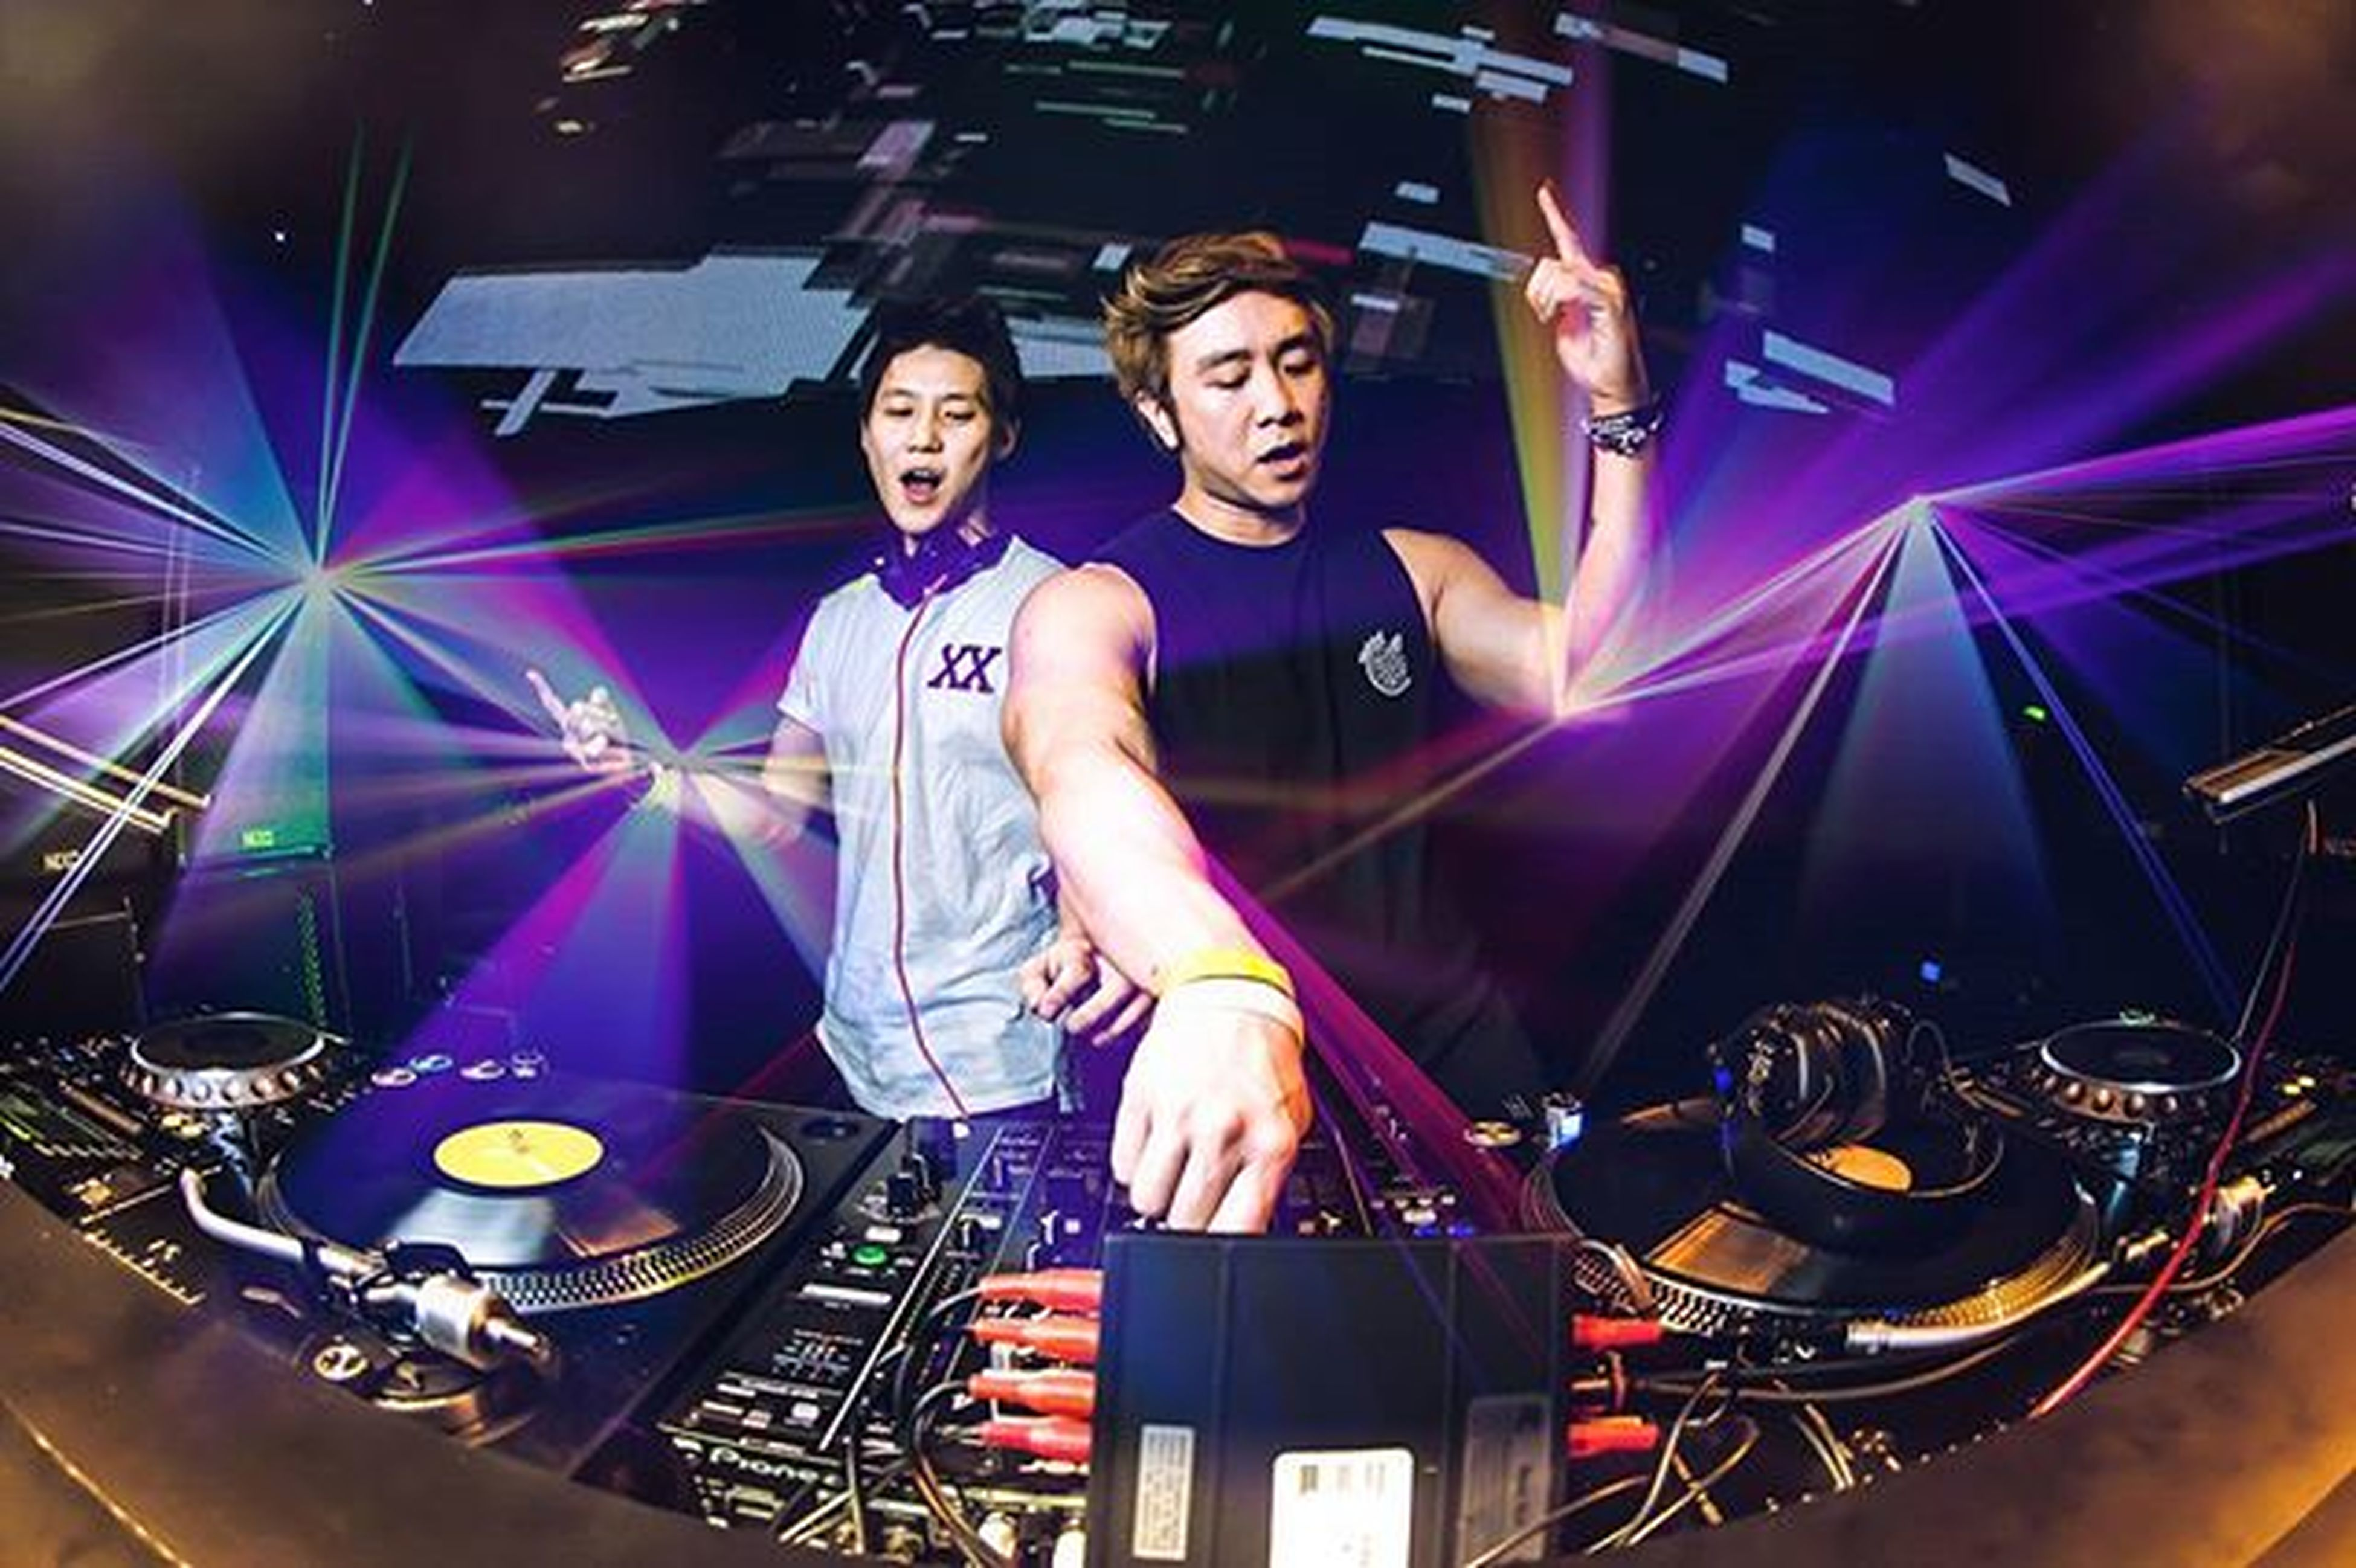 Our local Hotties doing us proud. @lincbyeo @inquisitive why you so handsome one. @bouncesquadmusic @thebighousesg Singapore Trap Edm Myheartwillgoon Trollsquad Nightlife